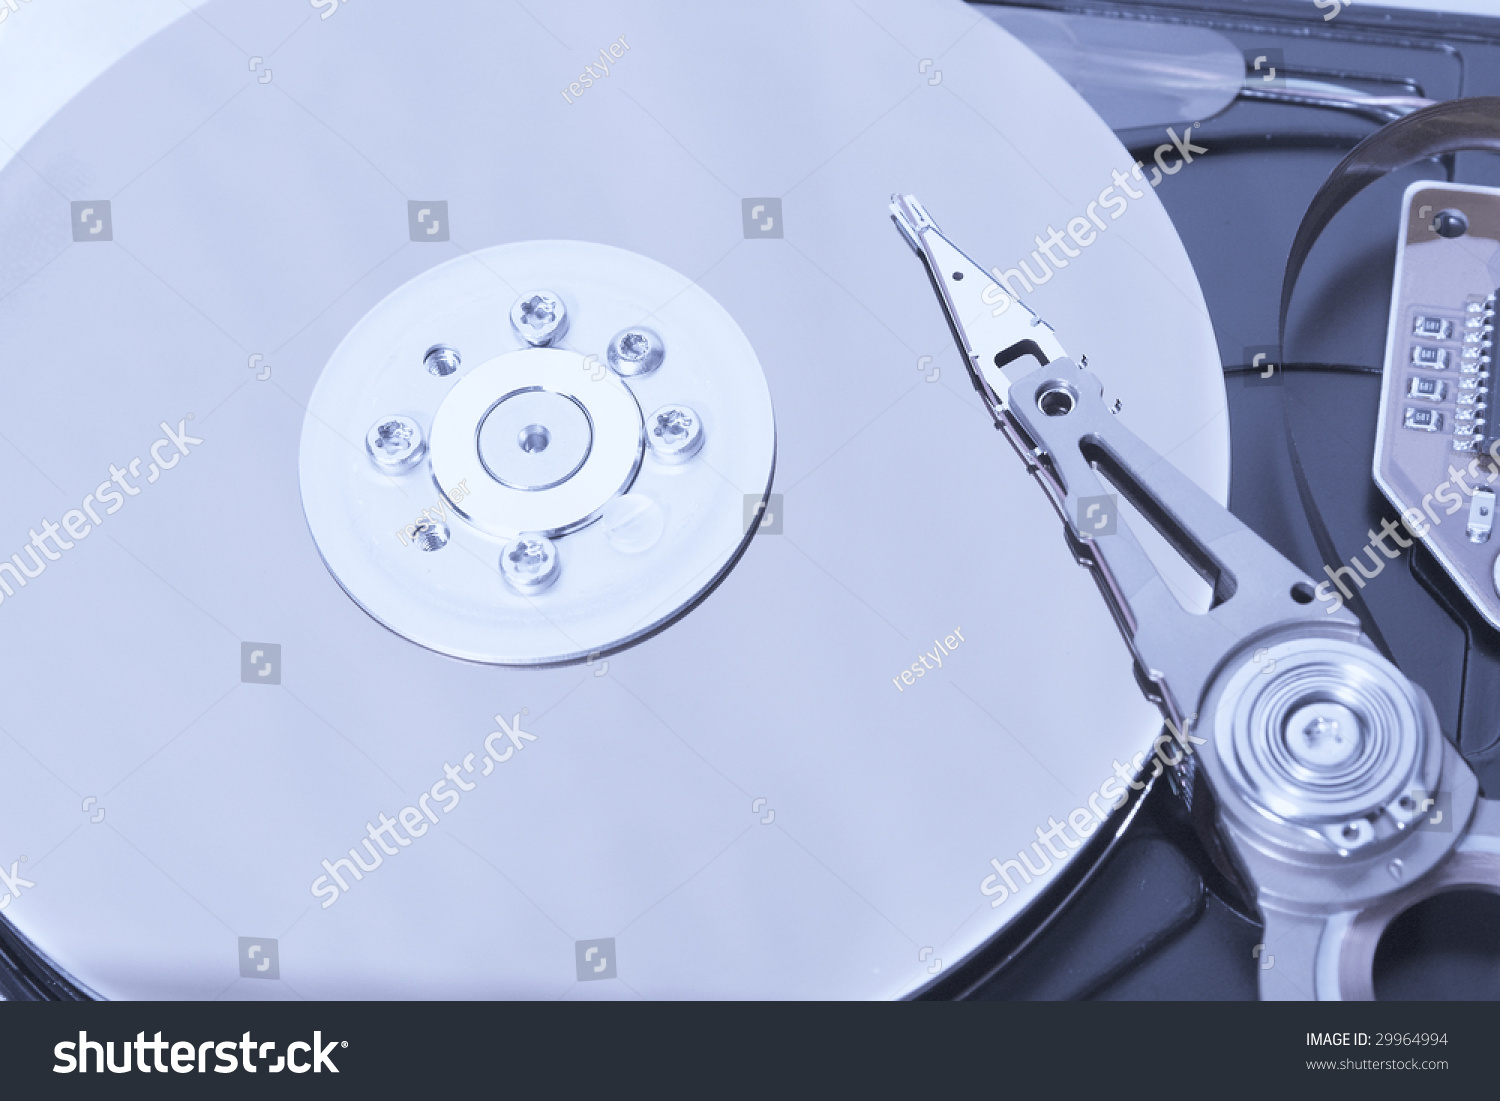 how to read hard drive from dead computer